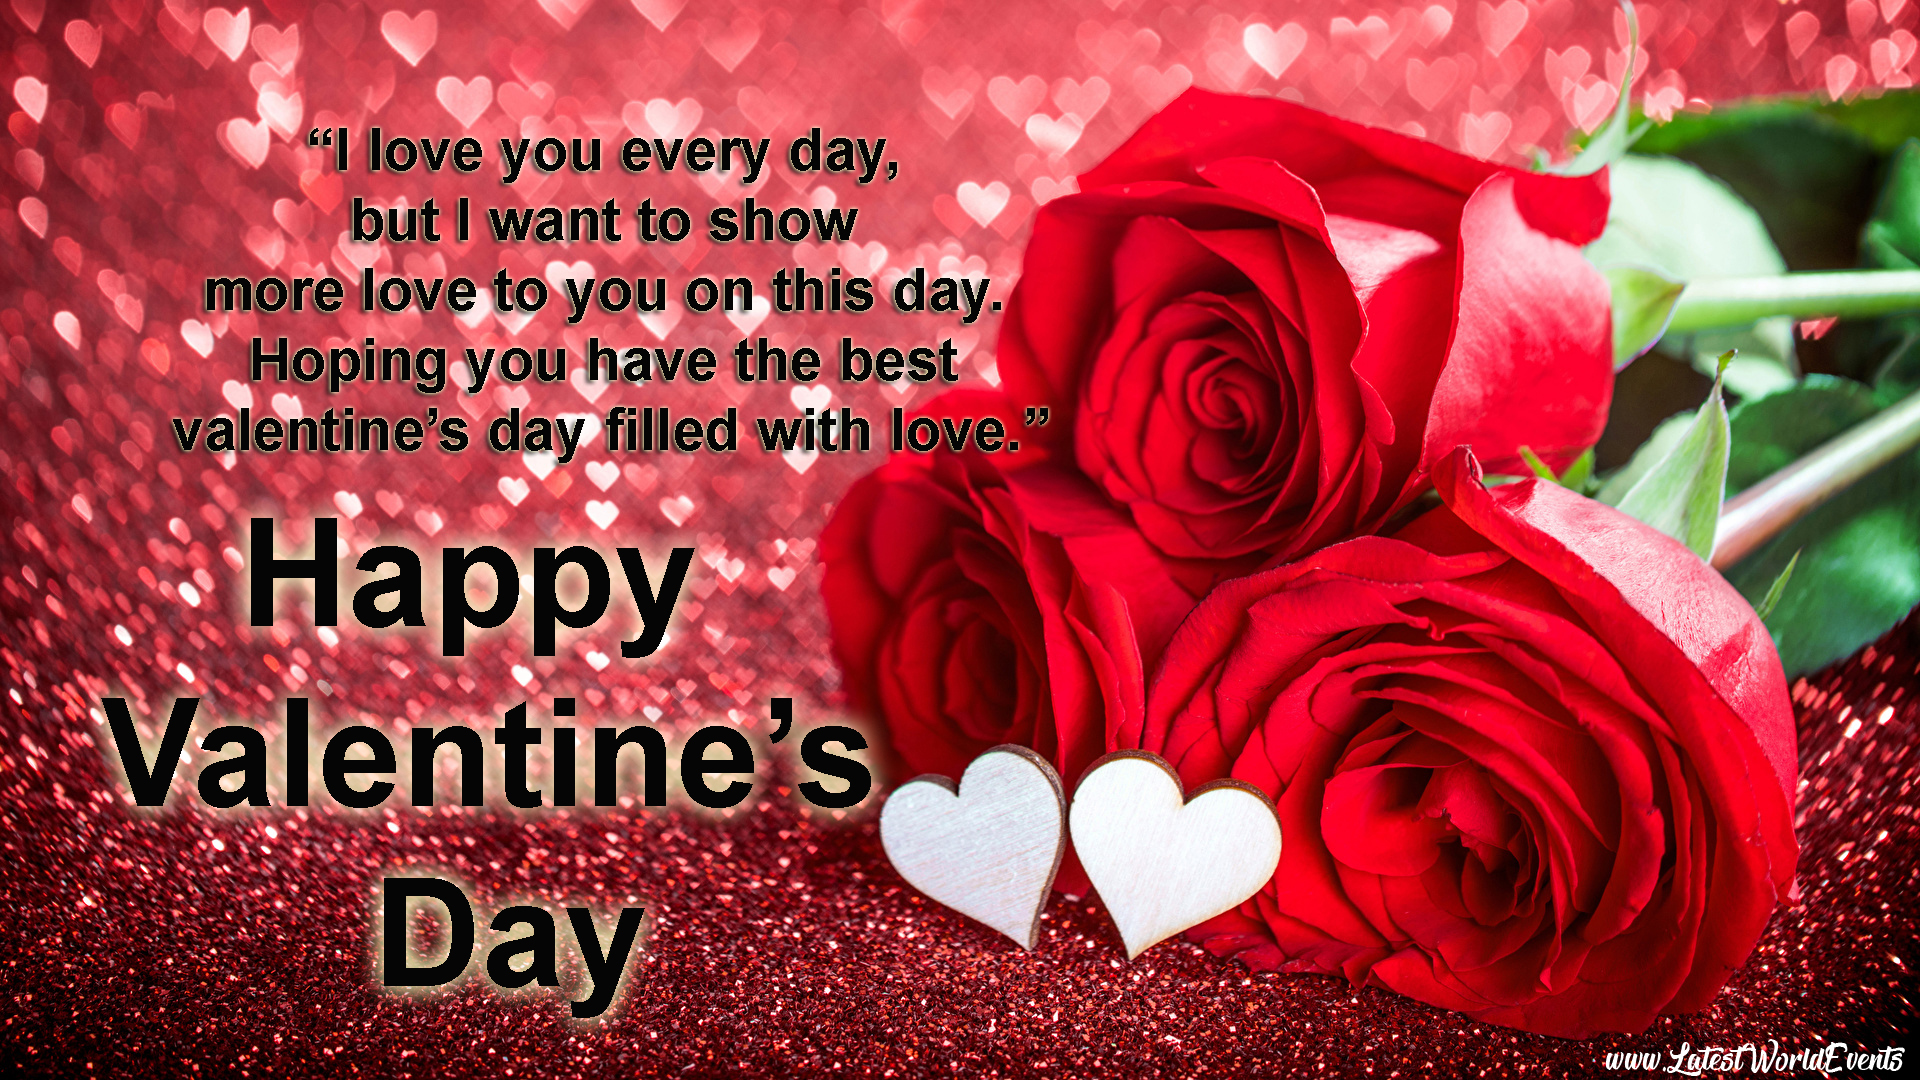 Valentines Day Quotes for Special Friend - Latest World Events